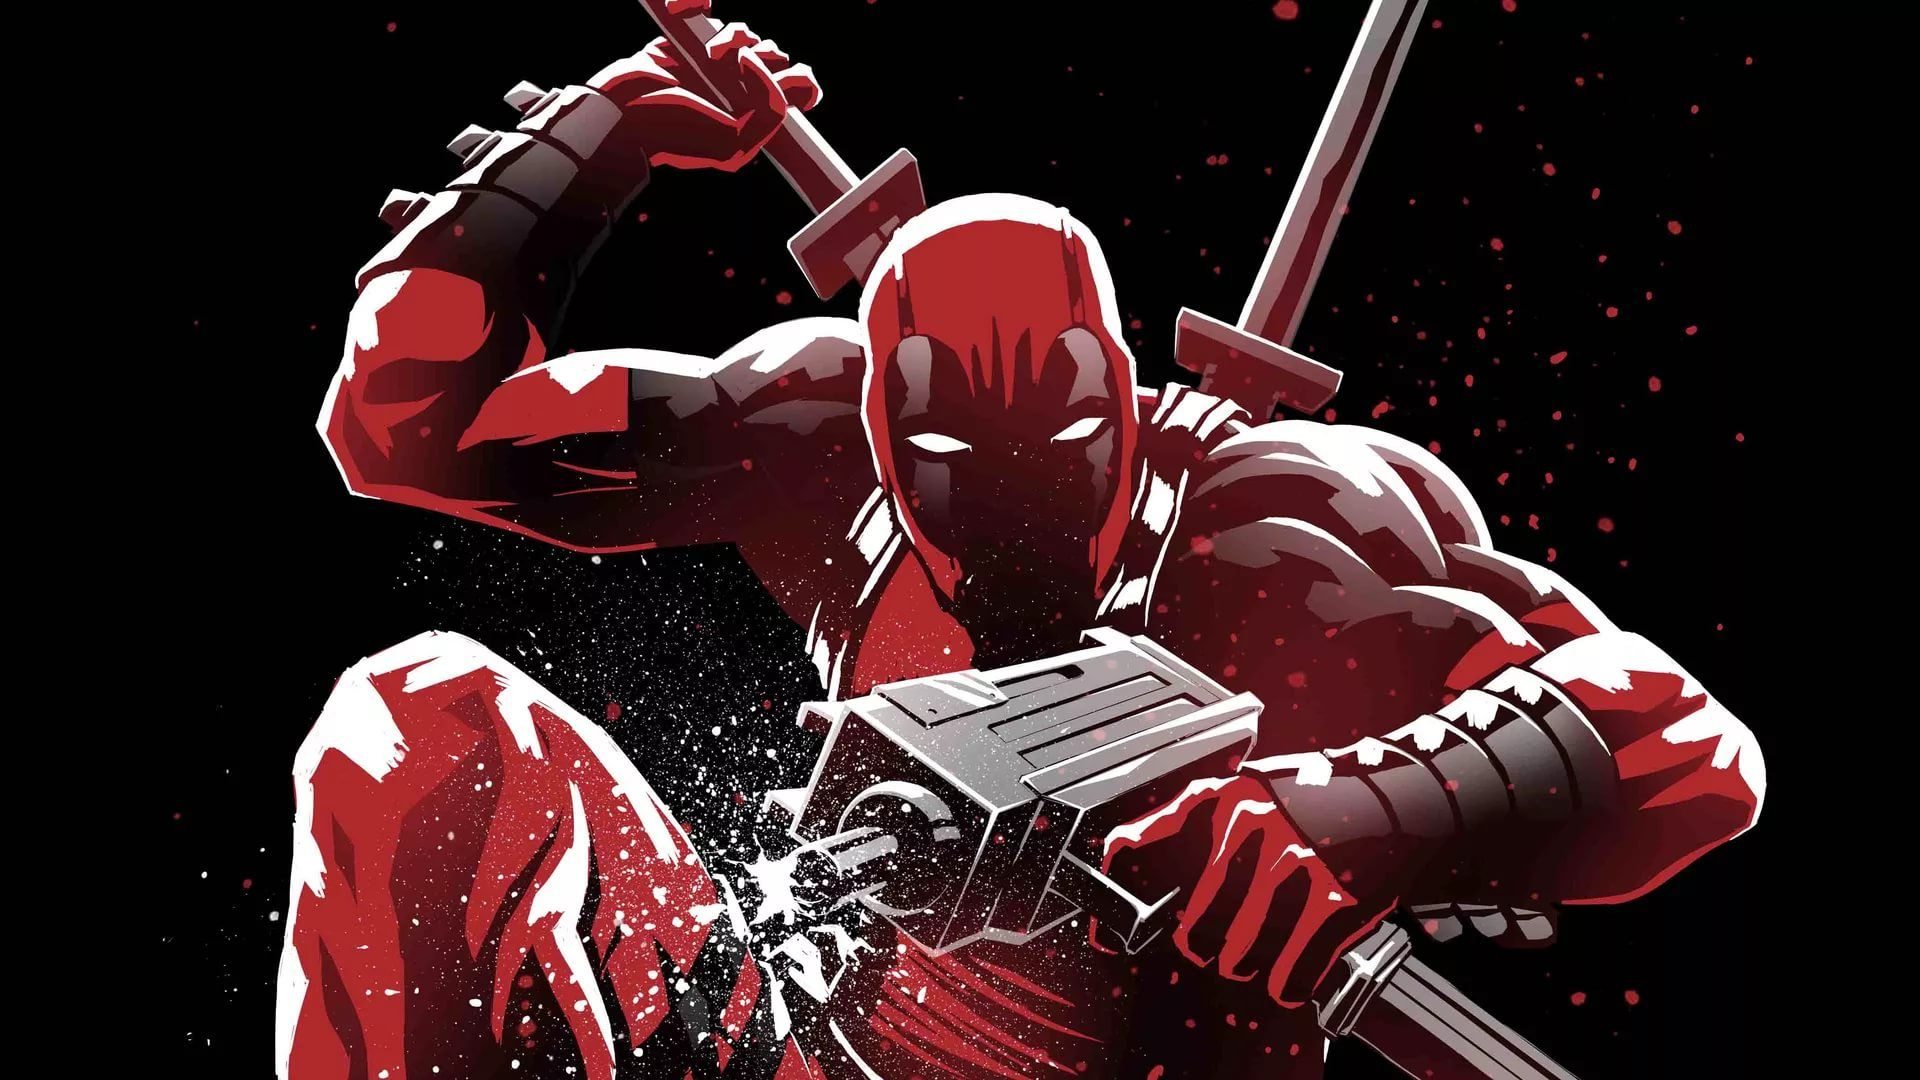 Cool Deadpool hd wallpaper 1080p for pc